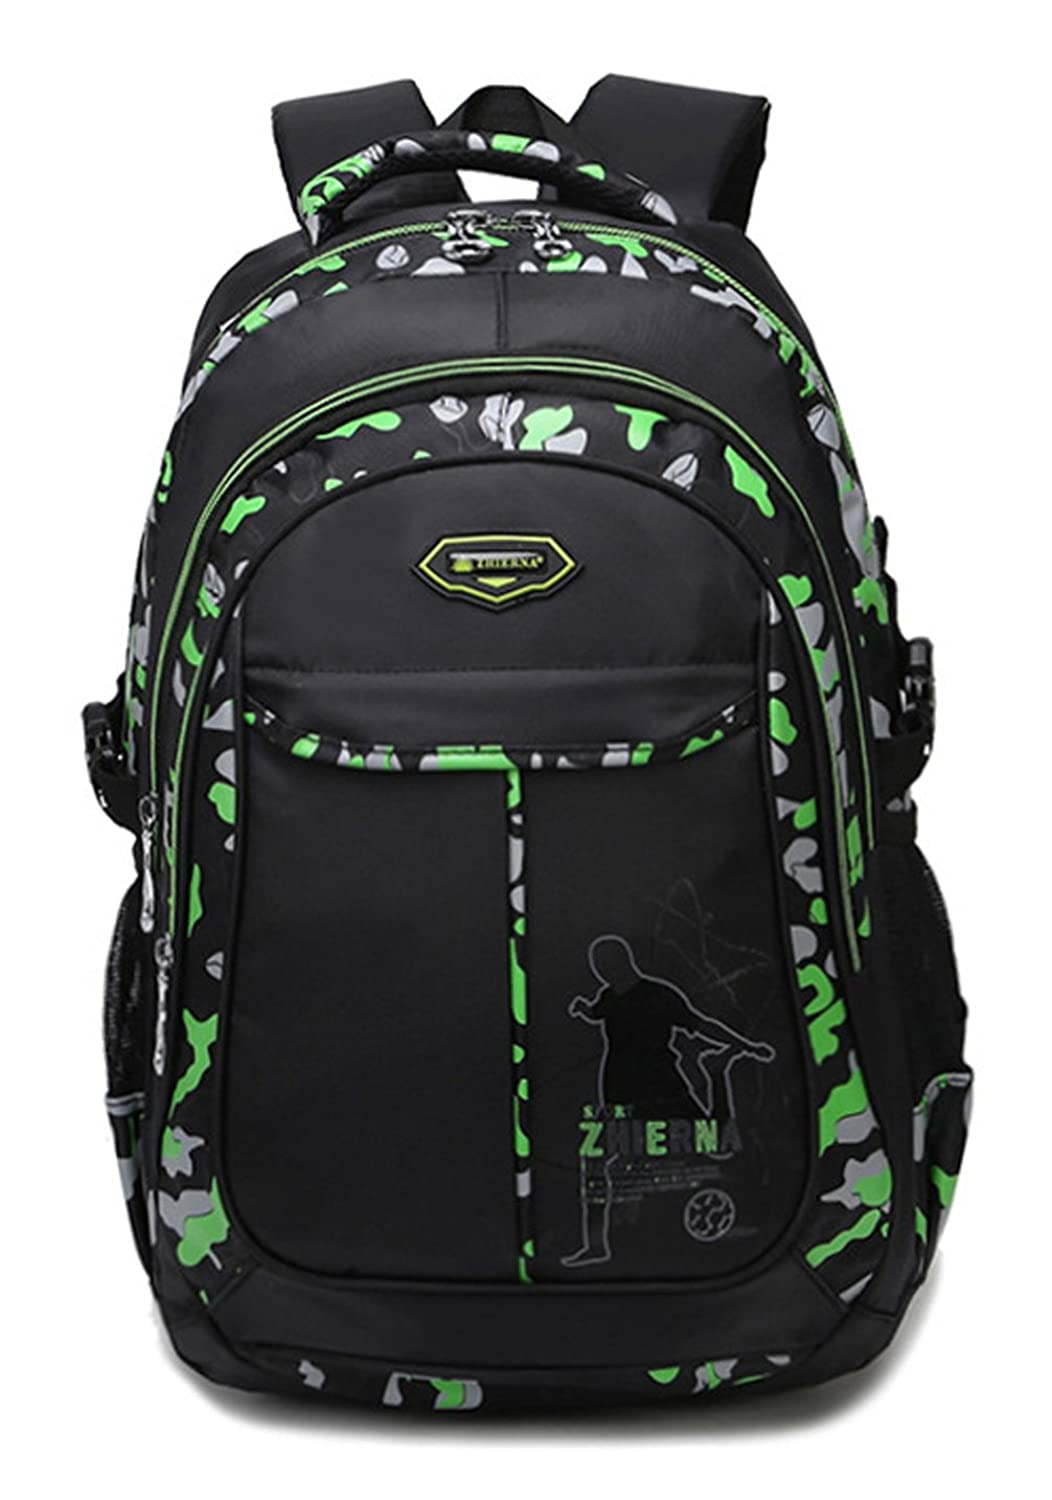 Keshi Nylon Fashion Most Durable Packable Handy Lightweight Travel Backpack Daypack